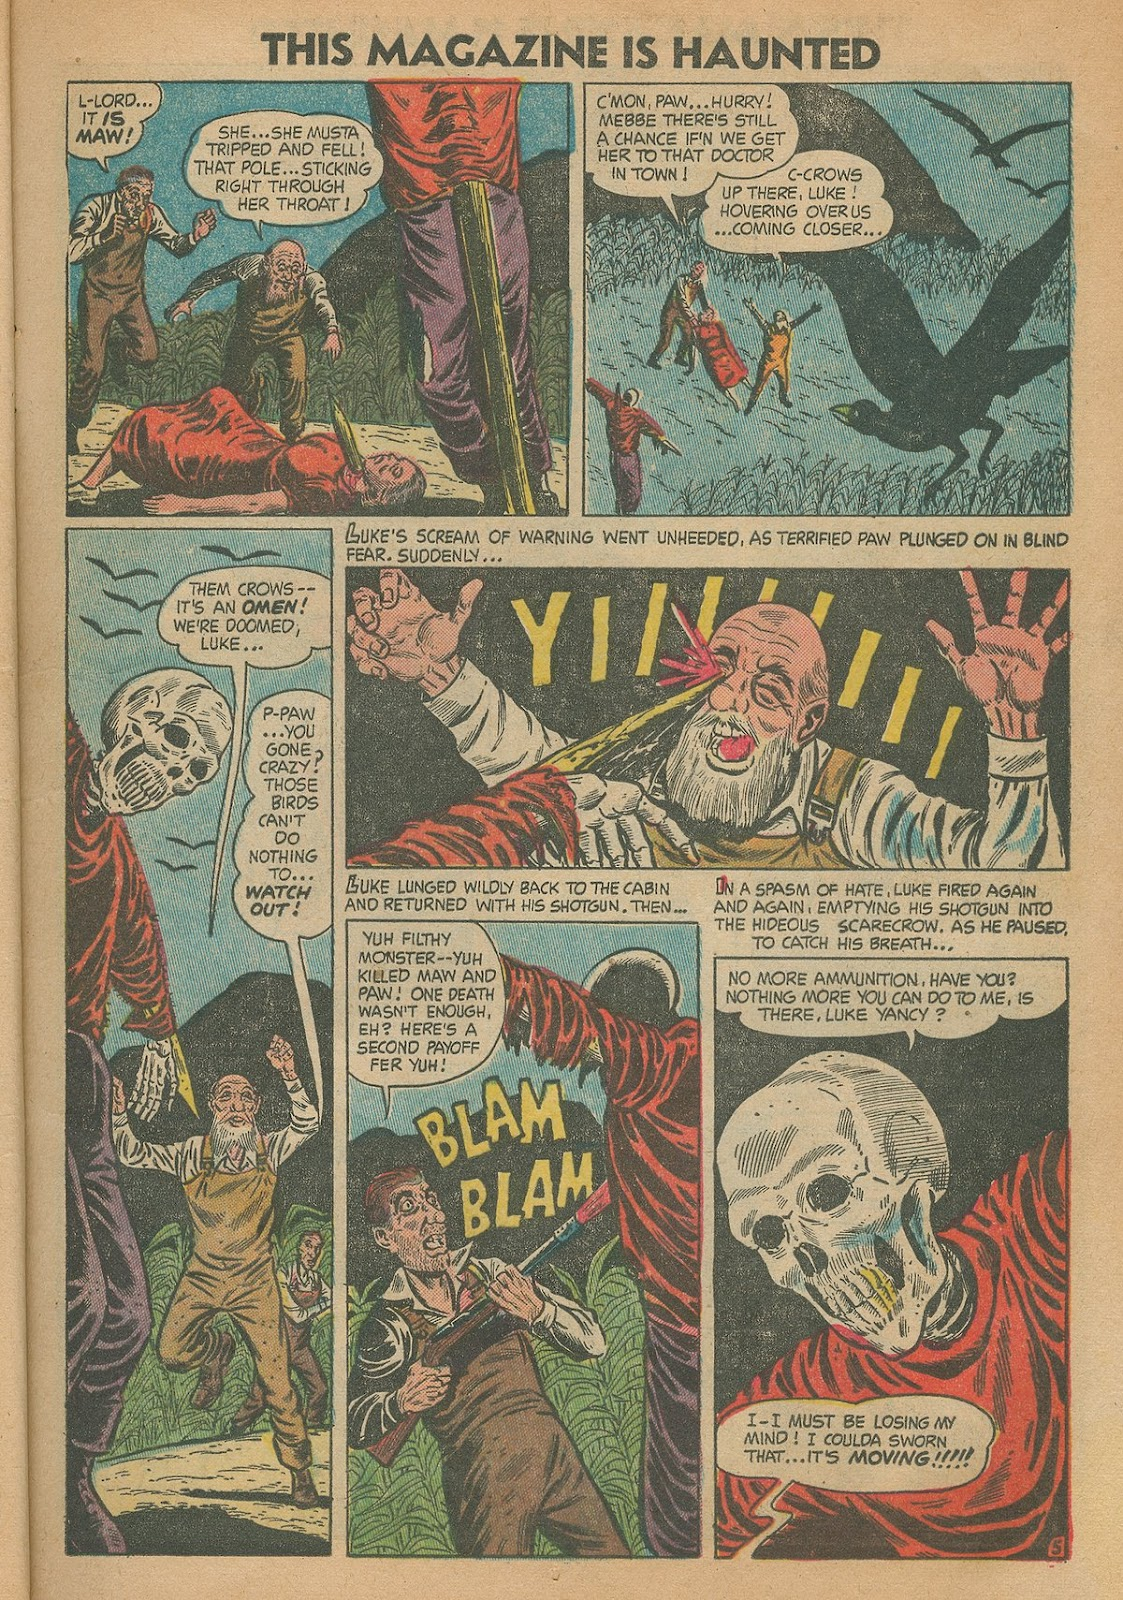 Read online This Magazine Is Haunted comic -  Issue #19 - 13